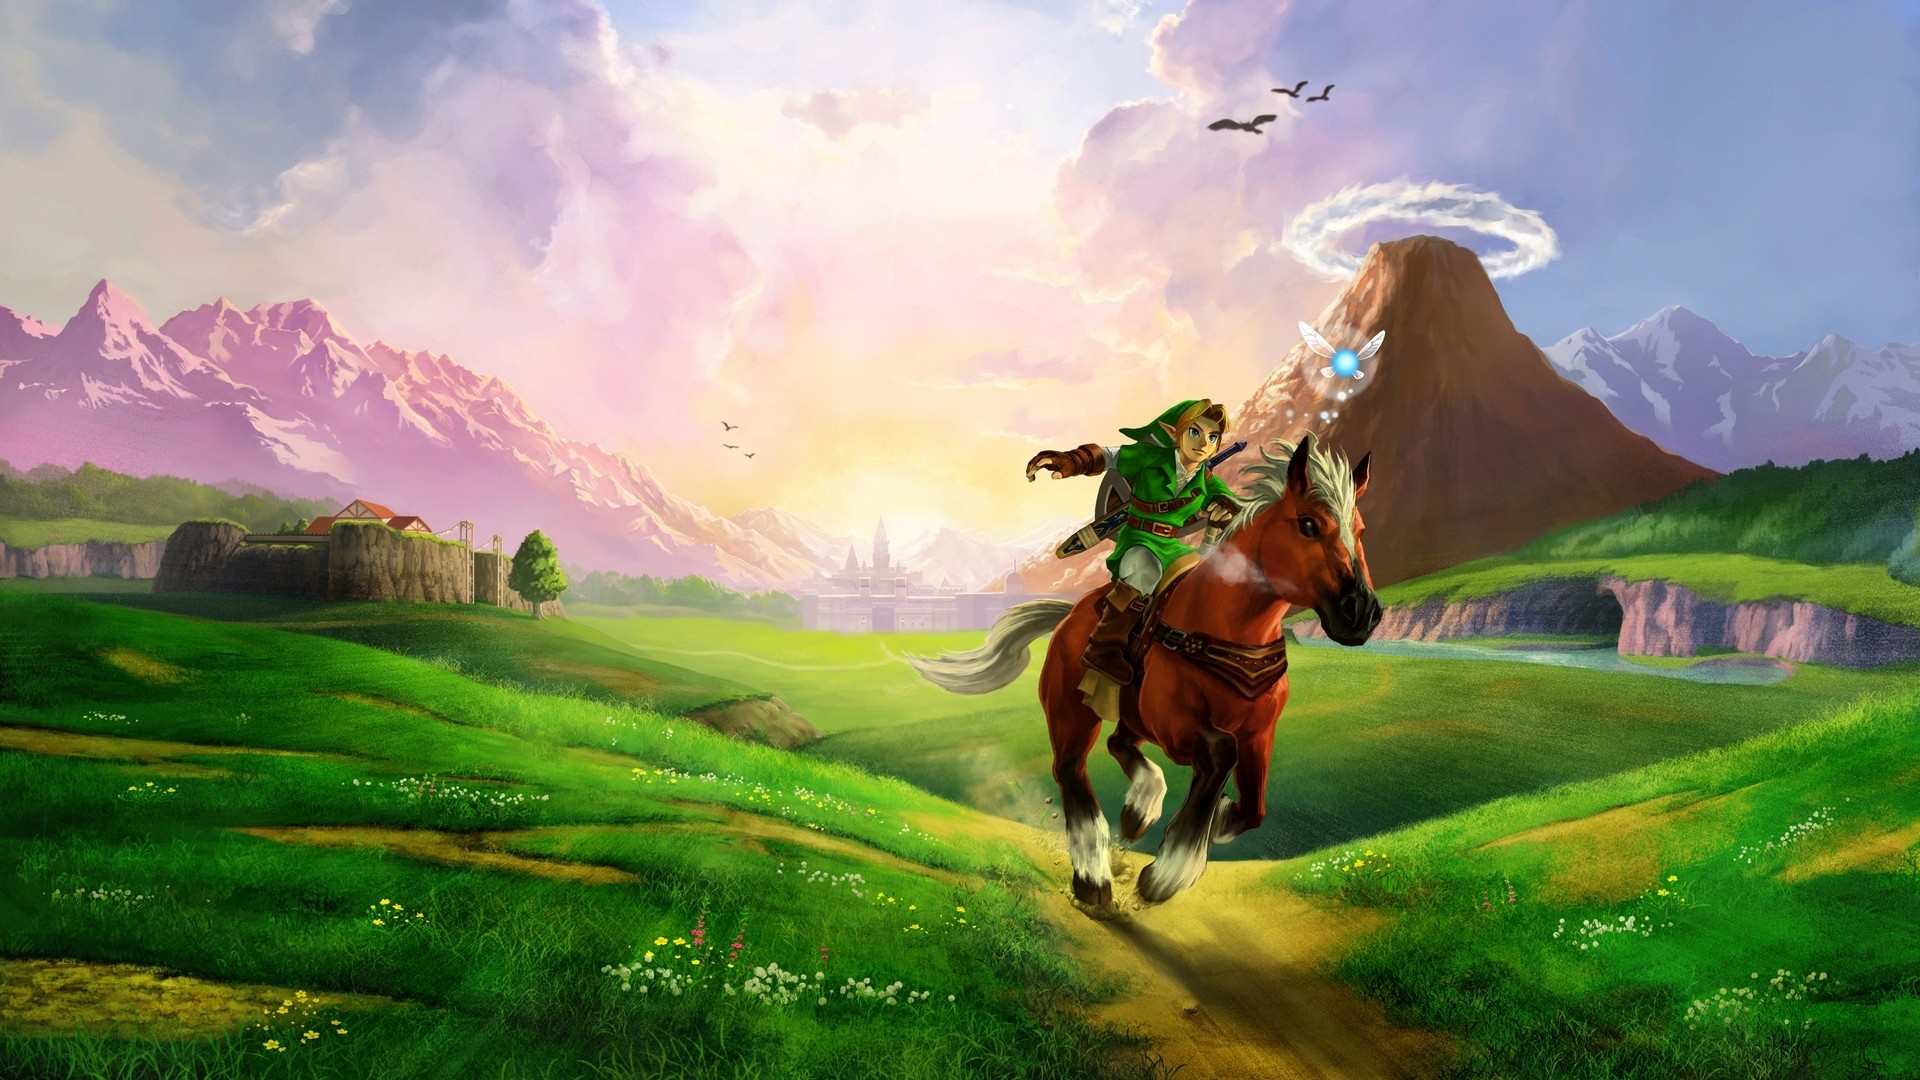 Wallpaper the legend of zelda horse plain river sunlight zelda 1920x1080